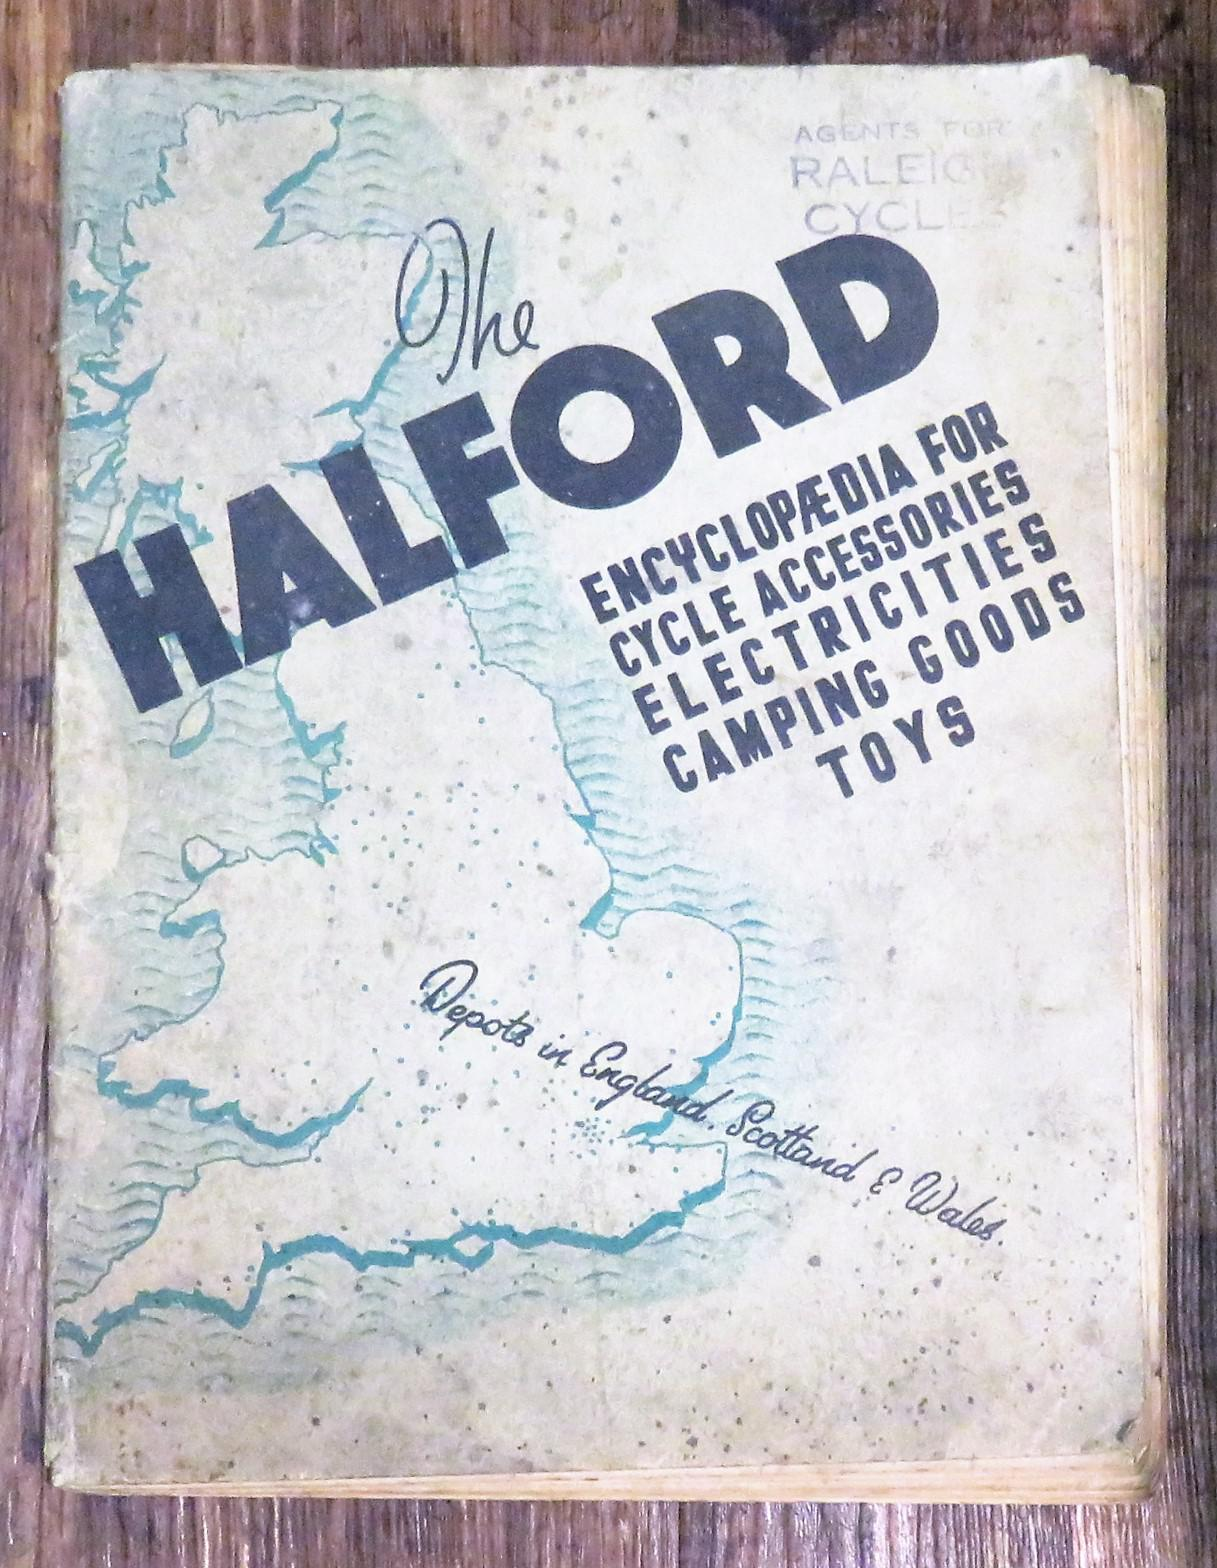 The Halford Encyclopaedia For Cycle Accessories Electricities Camping Goods Toys